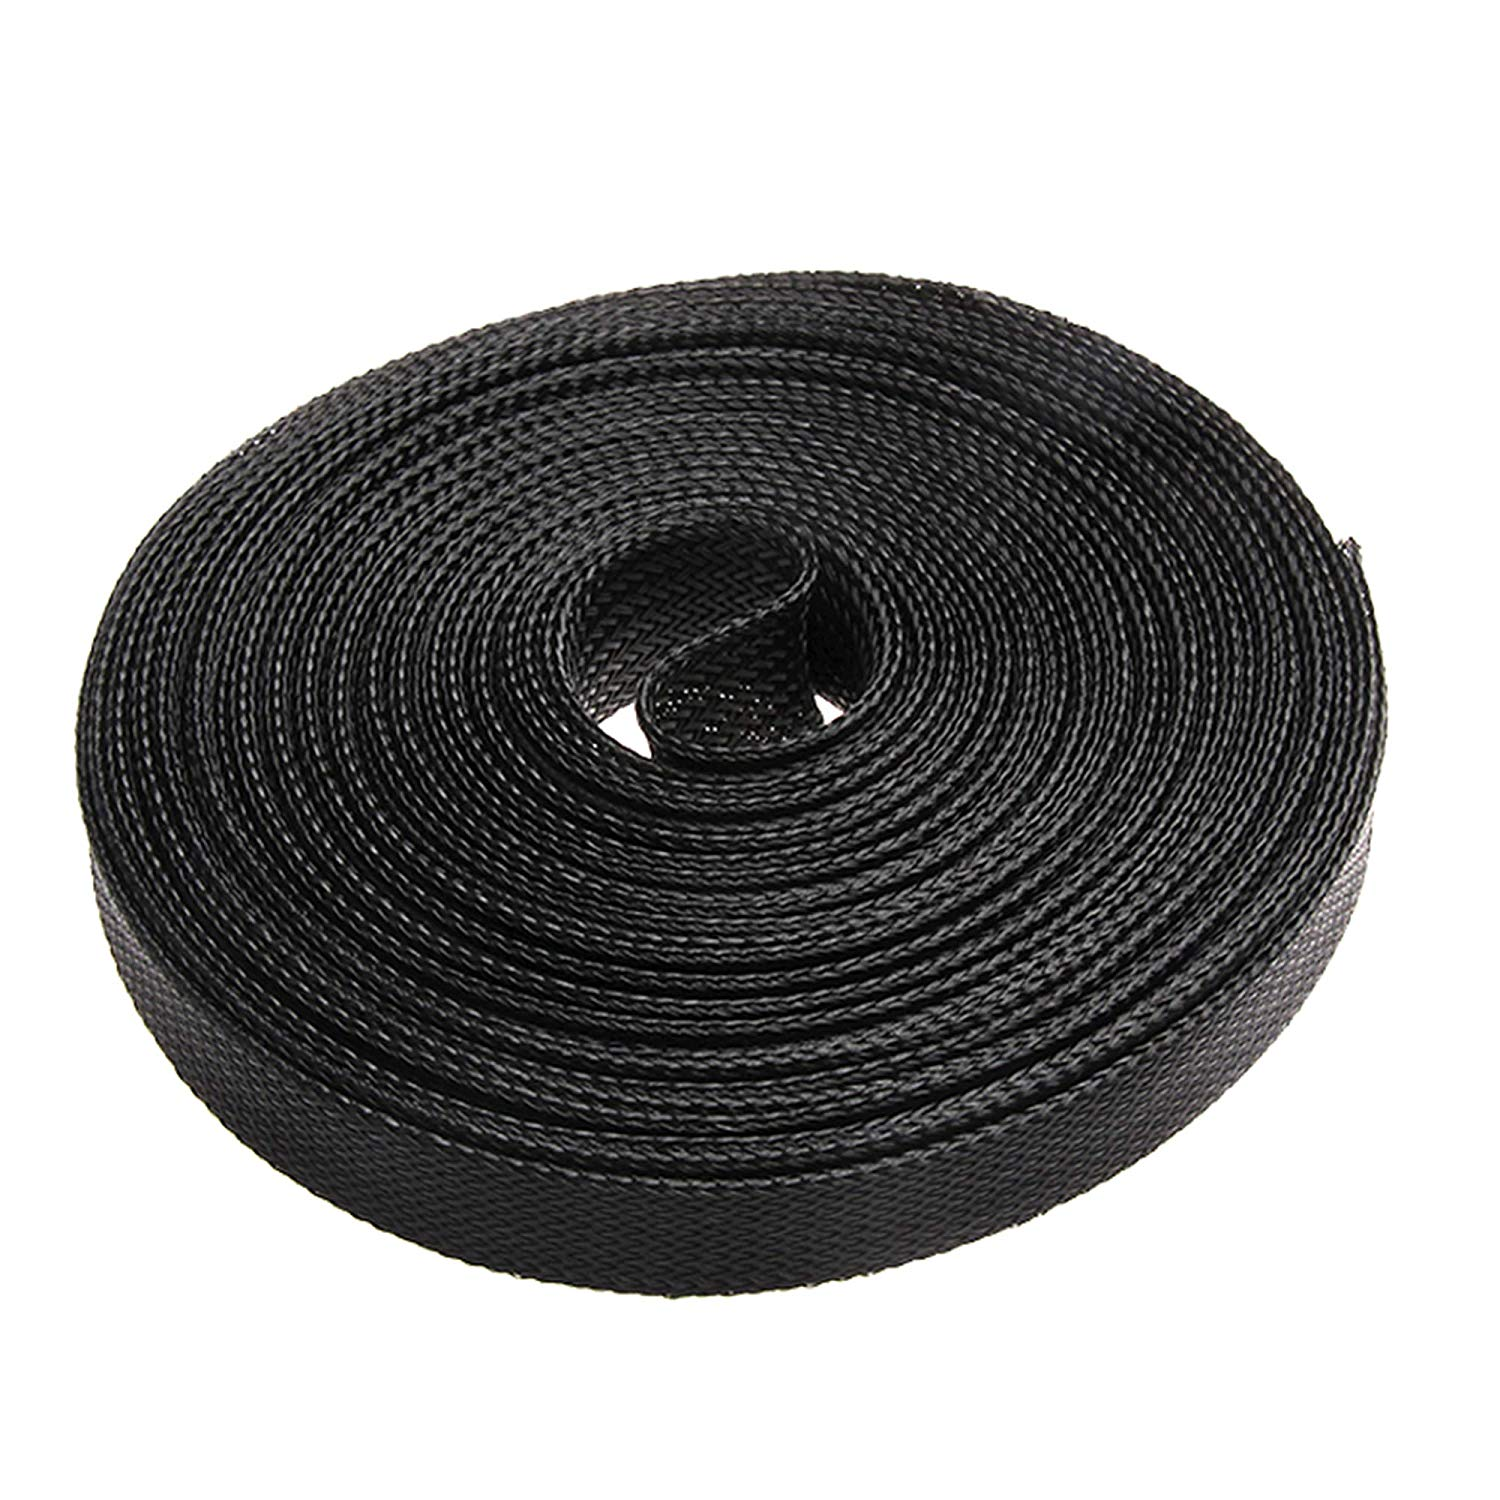 25FT-29/32Inch Nylon Expandable Braided Cable Sleeving,Braided Wire Sleeve,Cable Sheath Mesh Wire Loom